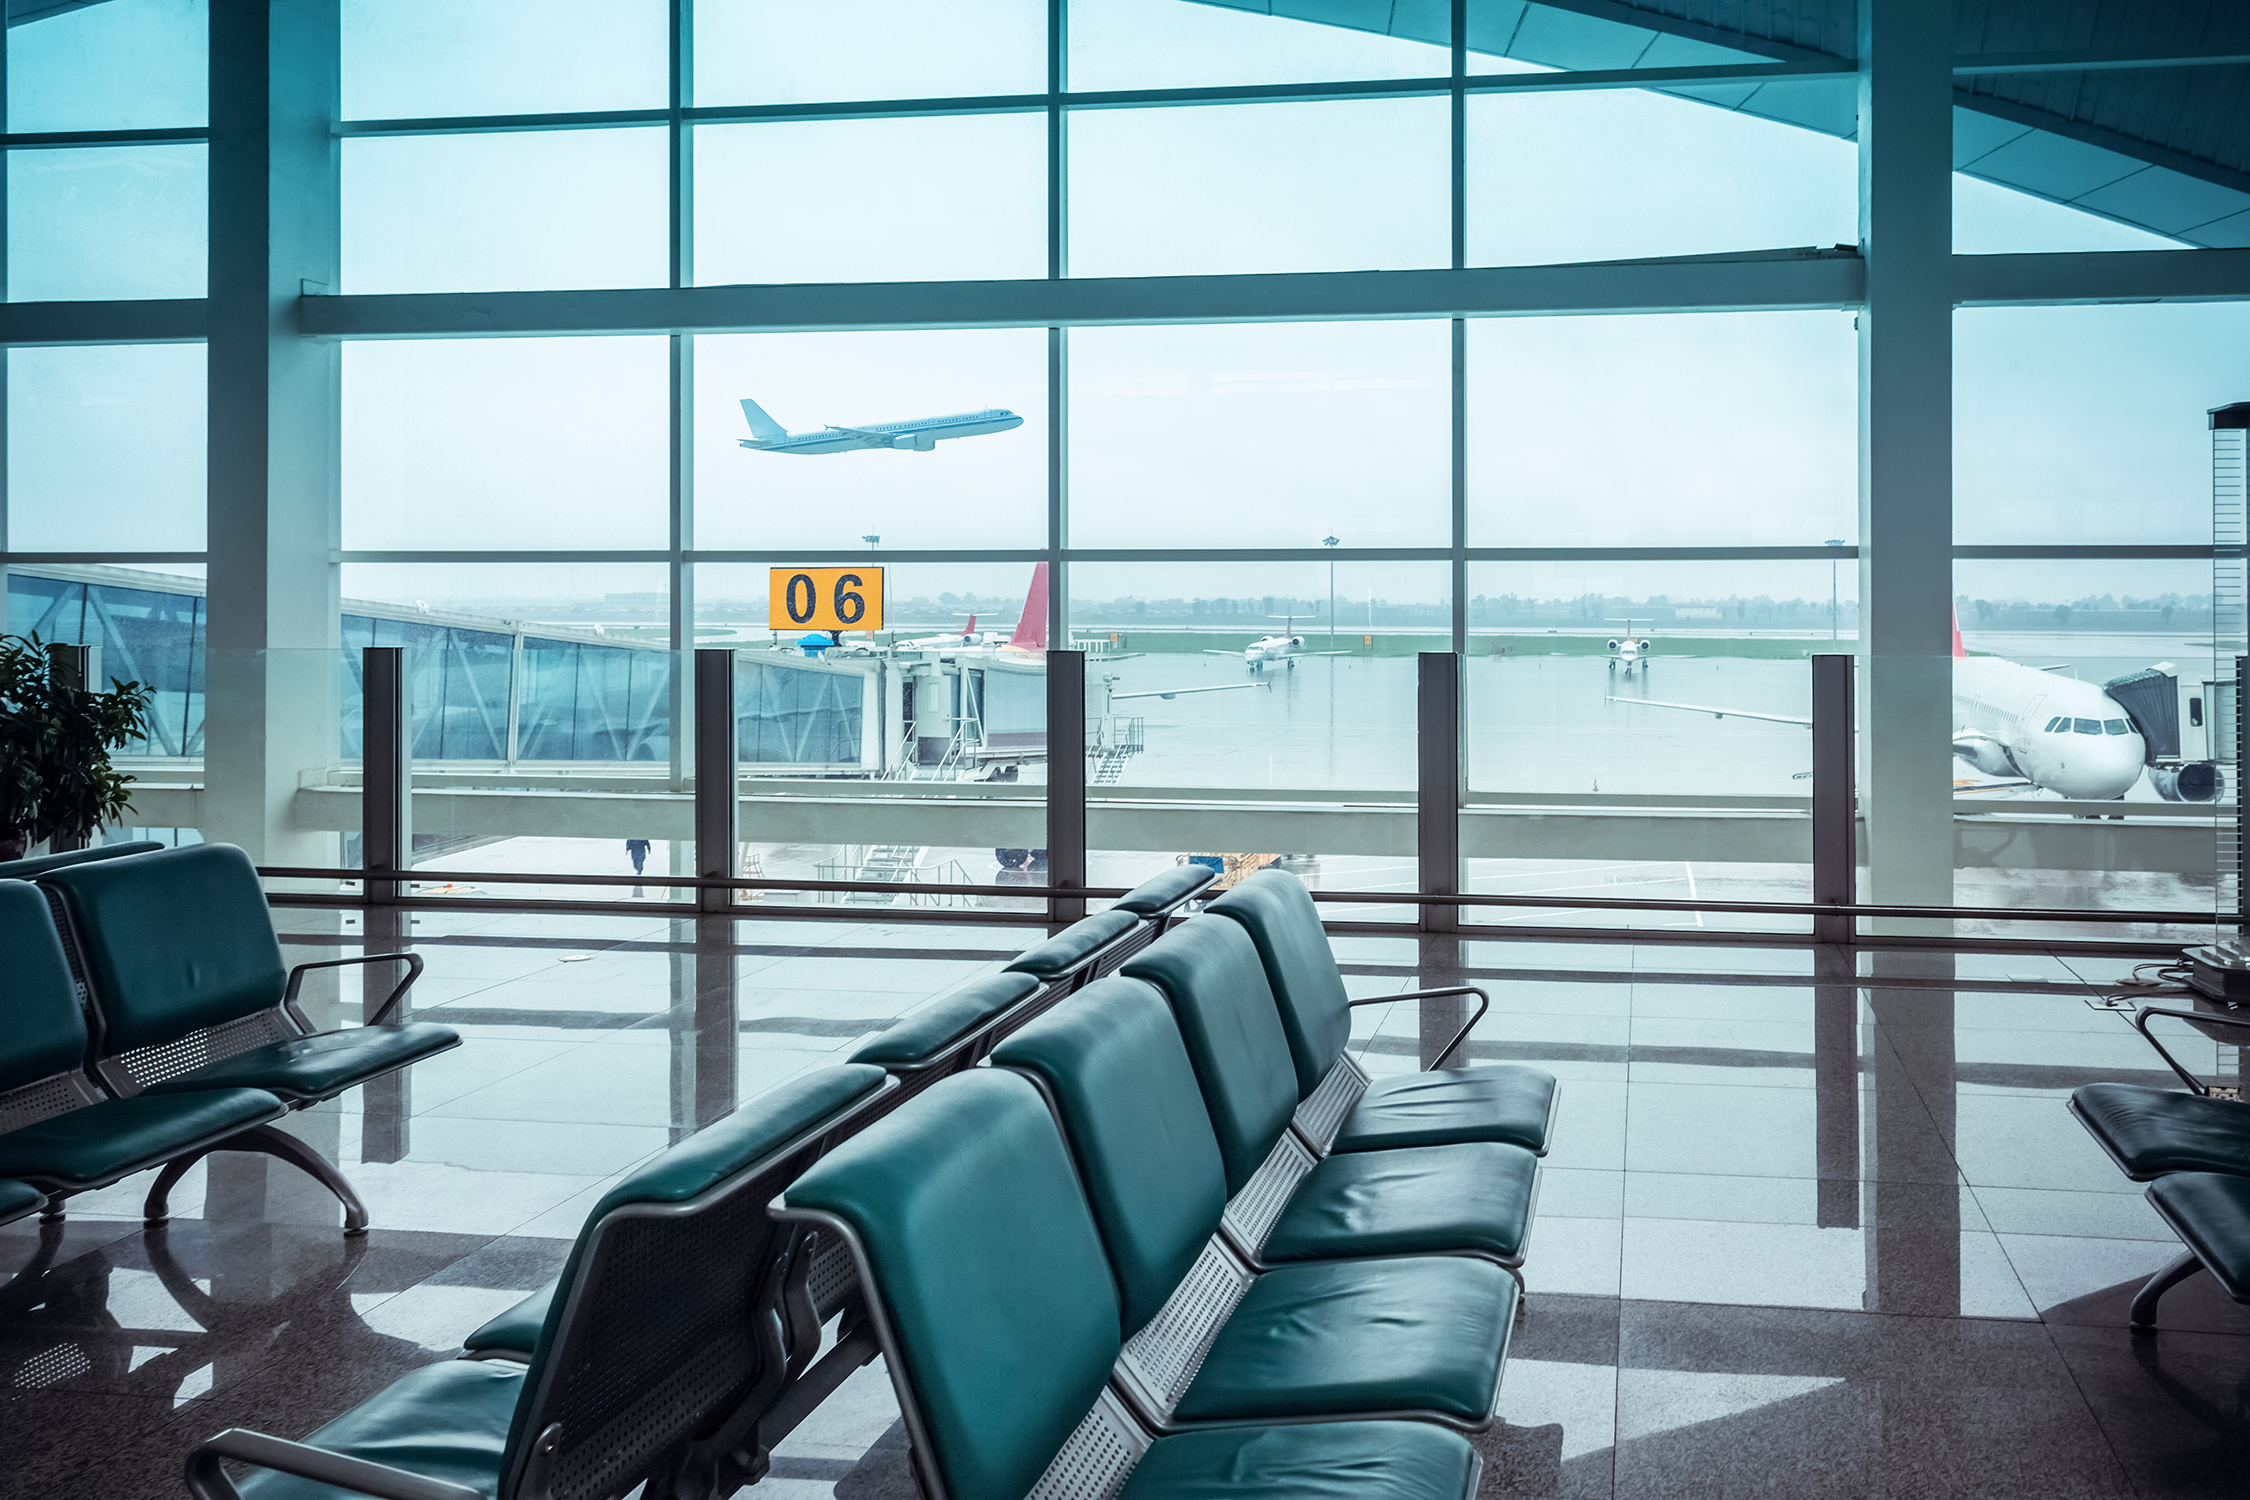 airport-window-view-and-seat-PNVQCY8.jpg